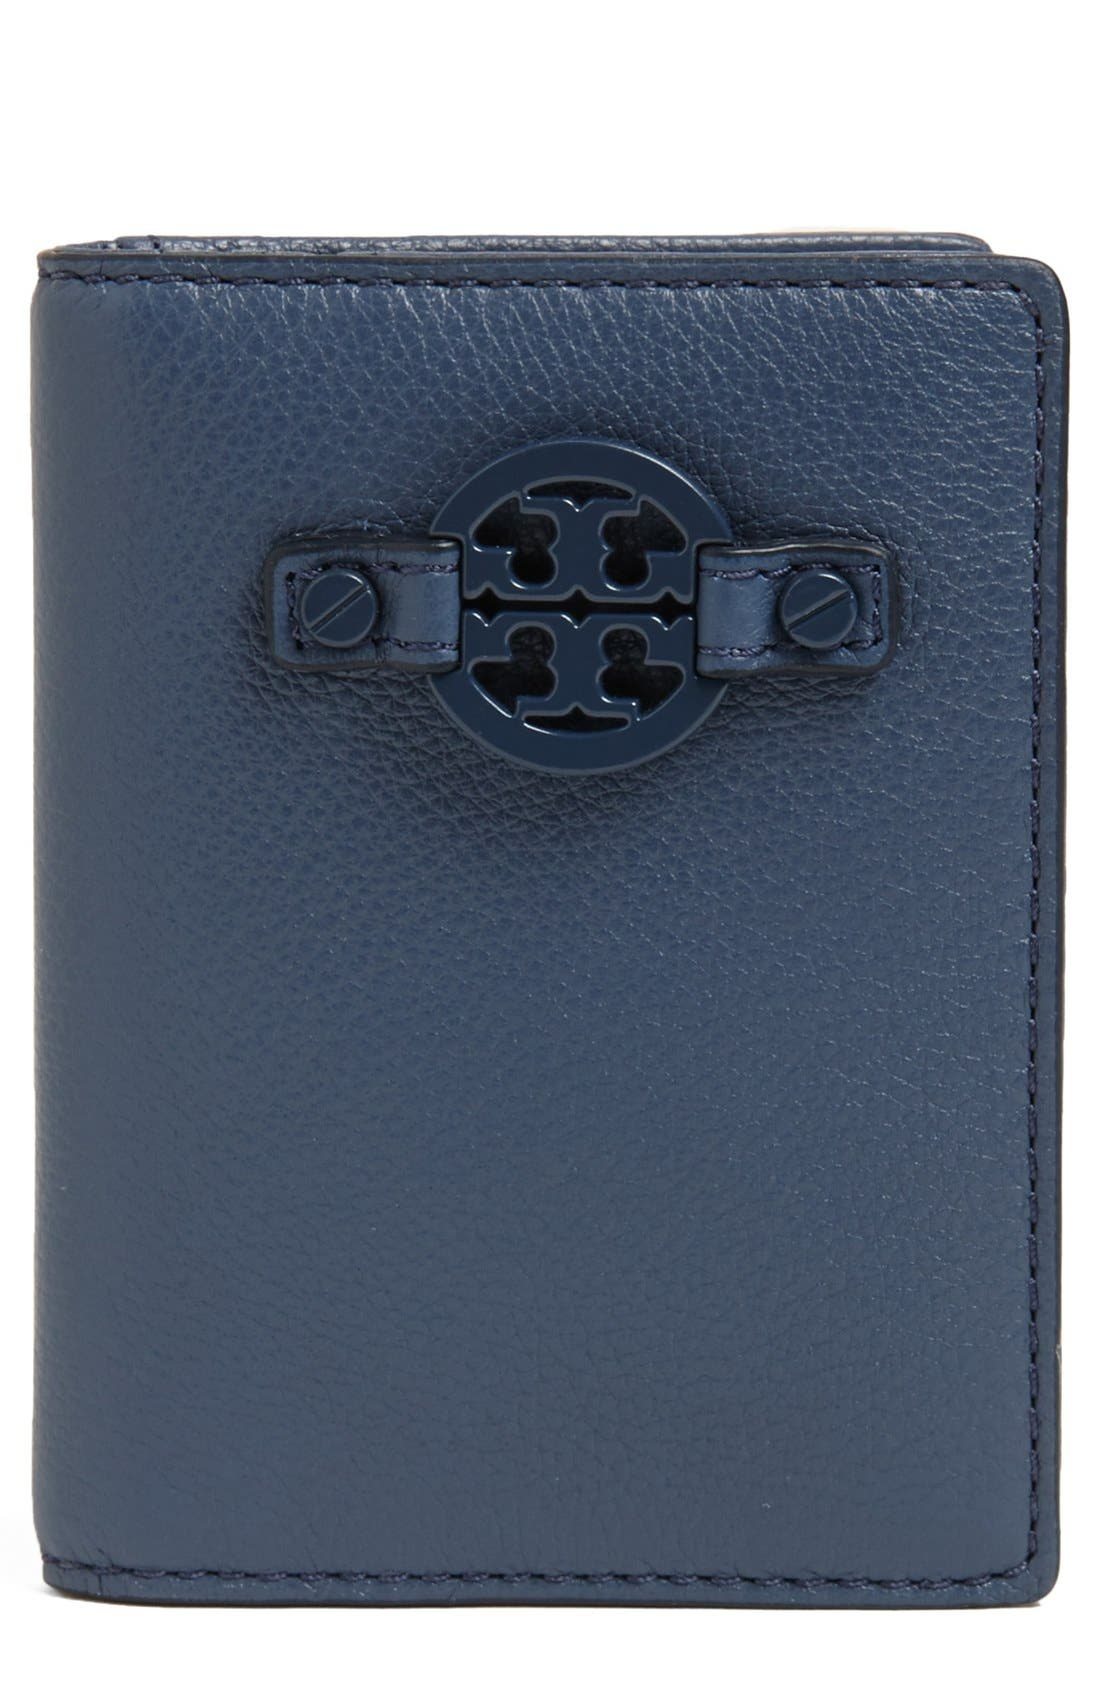 Alternate Image 1 Selected - Tory Burch 'Amanda' Leather Card Case